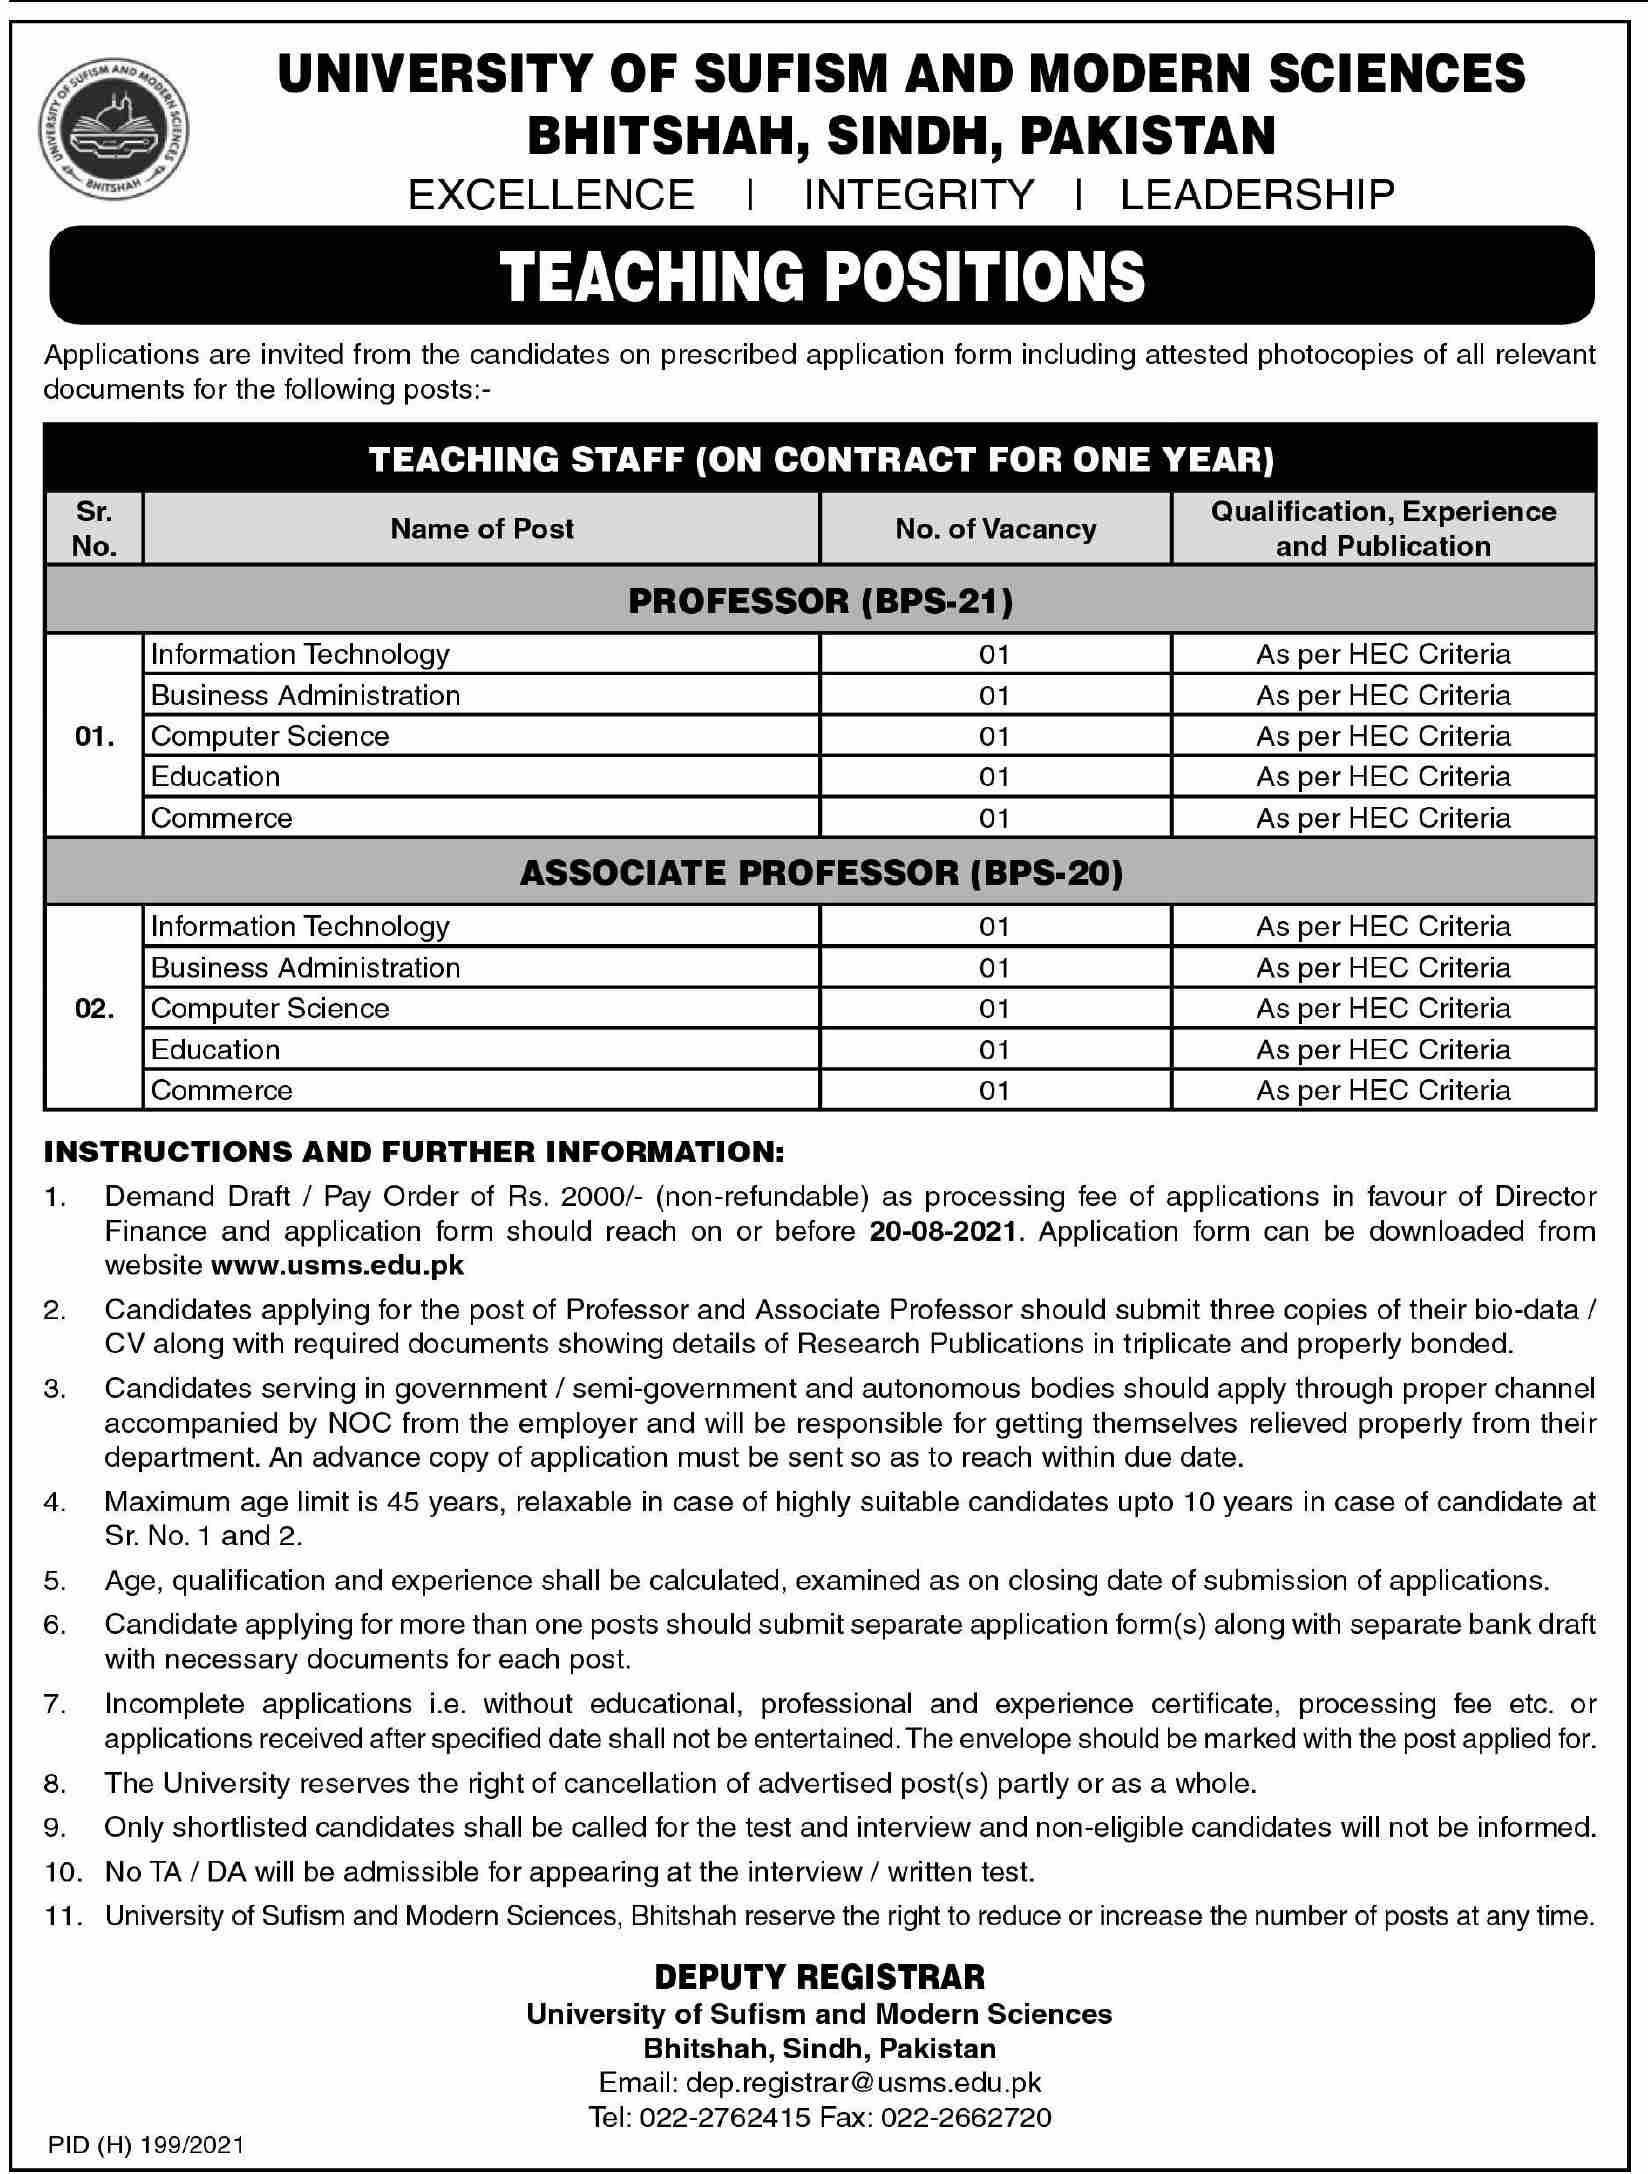 University of Sufism and Modern Sciences Jobs 2021